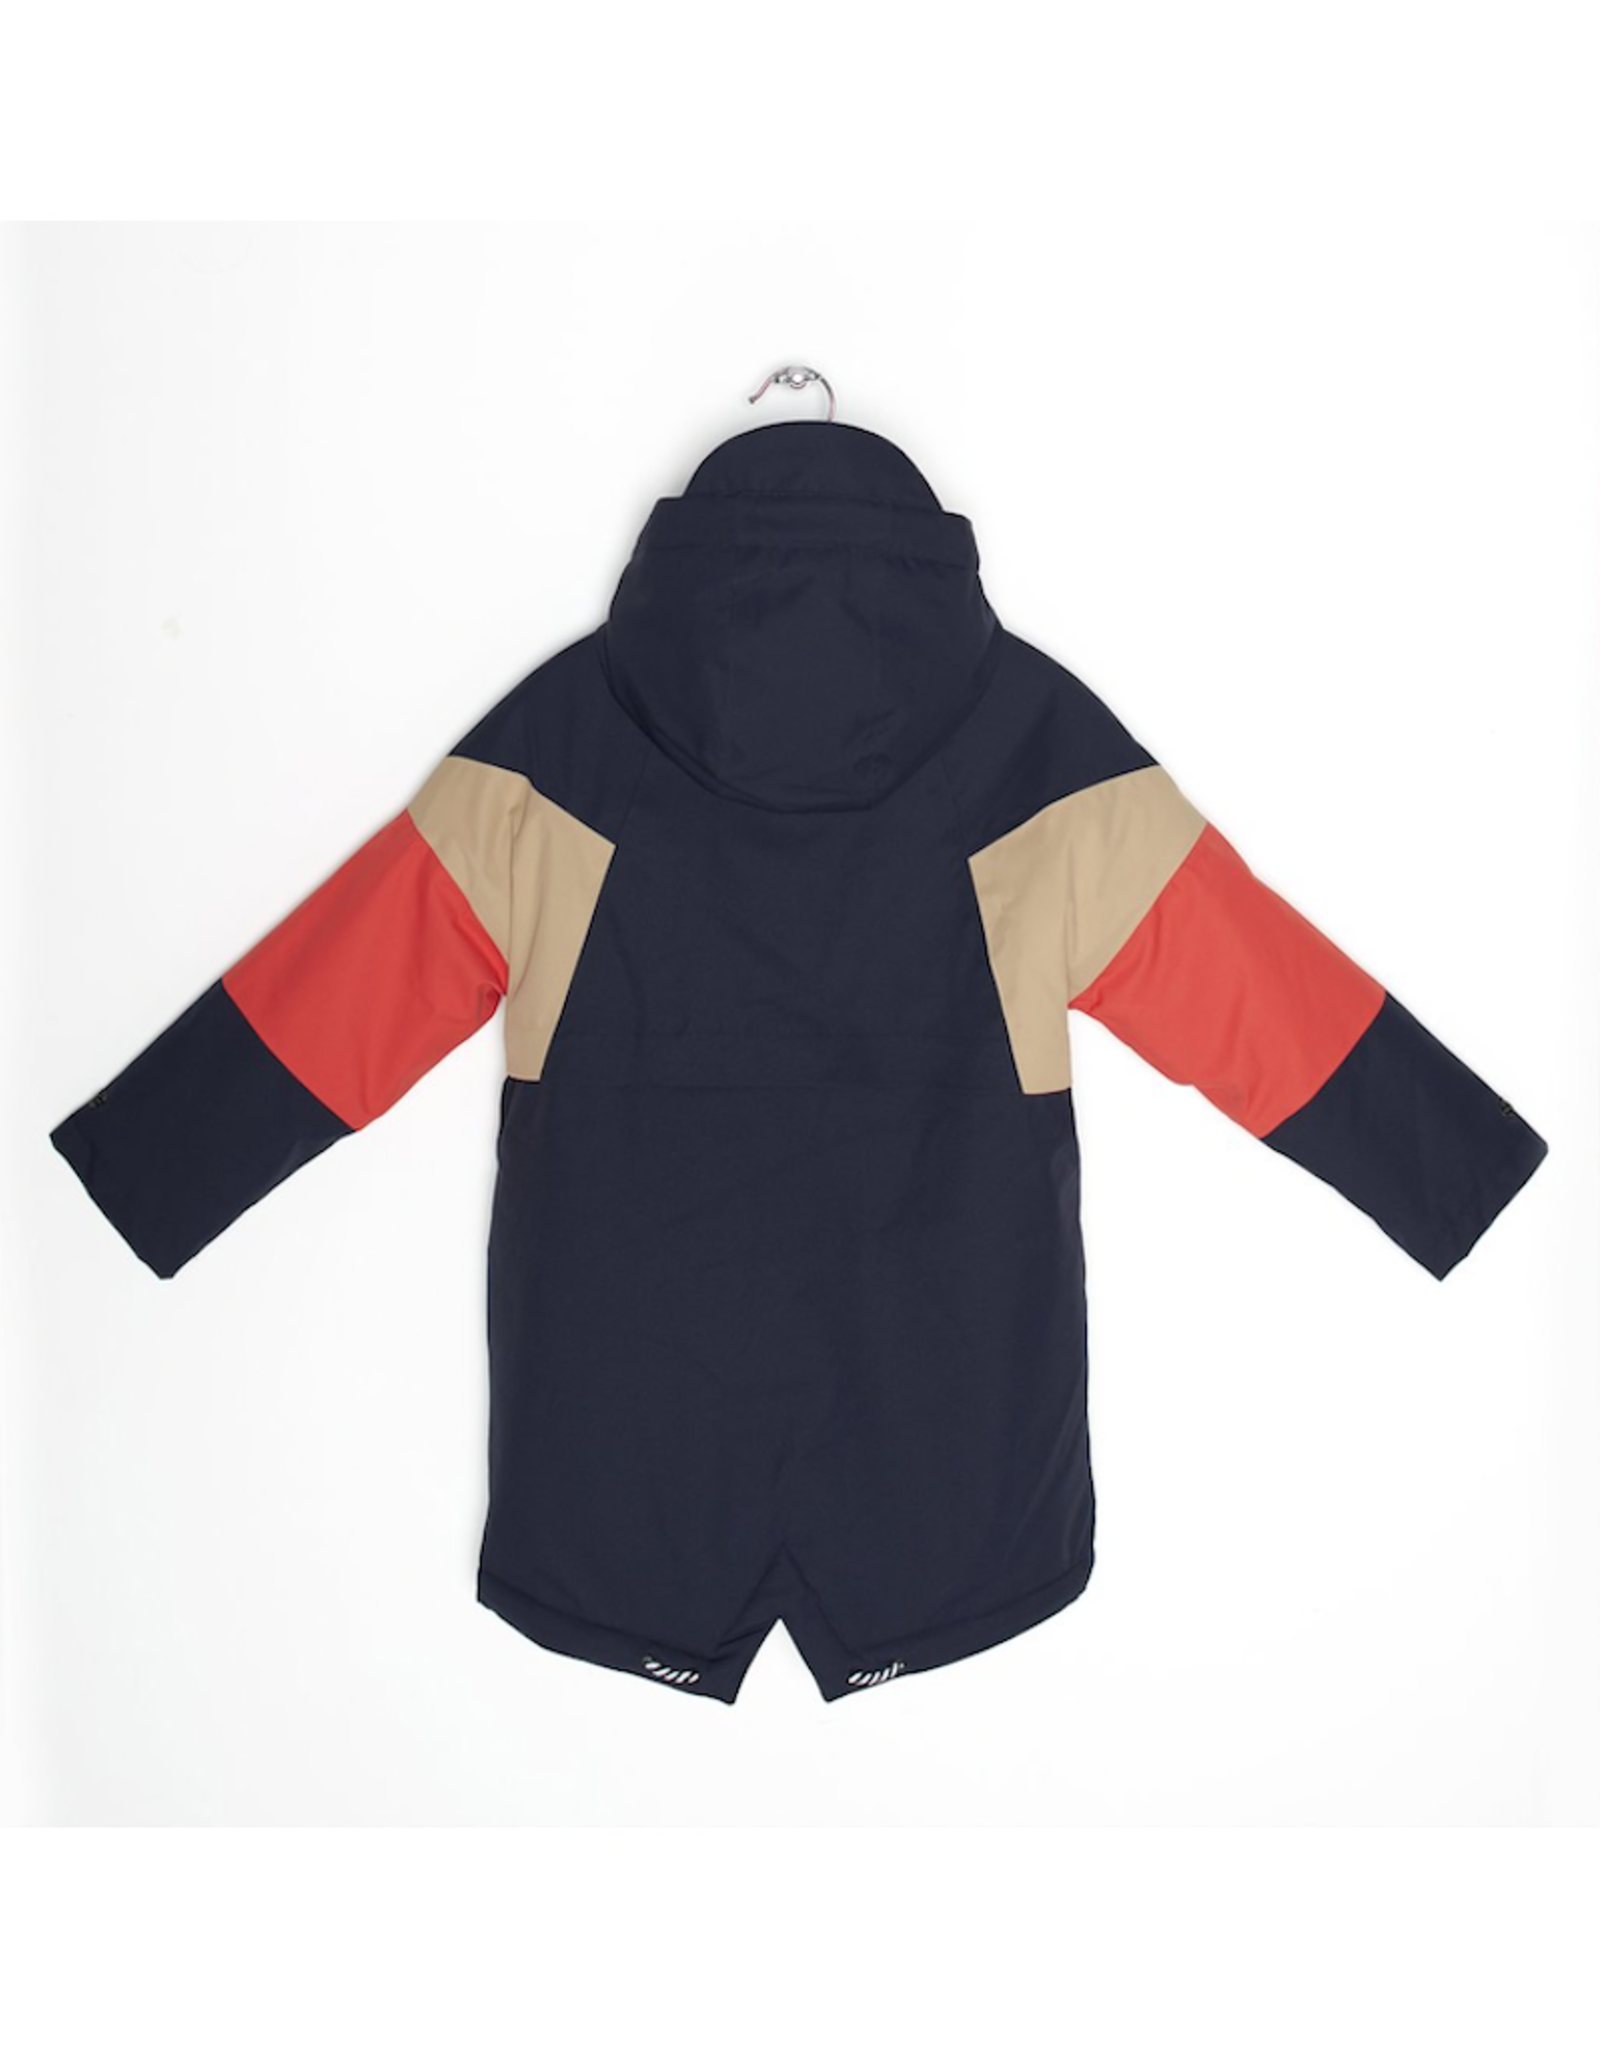 Go Soaky Dessert Fox Waterproof Lined Parka in Mood indigo / Candied Ginger / Spicy Red